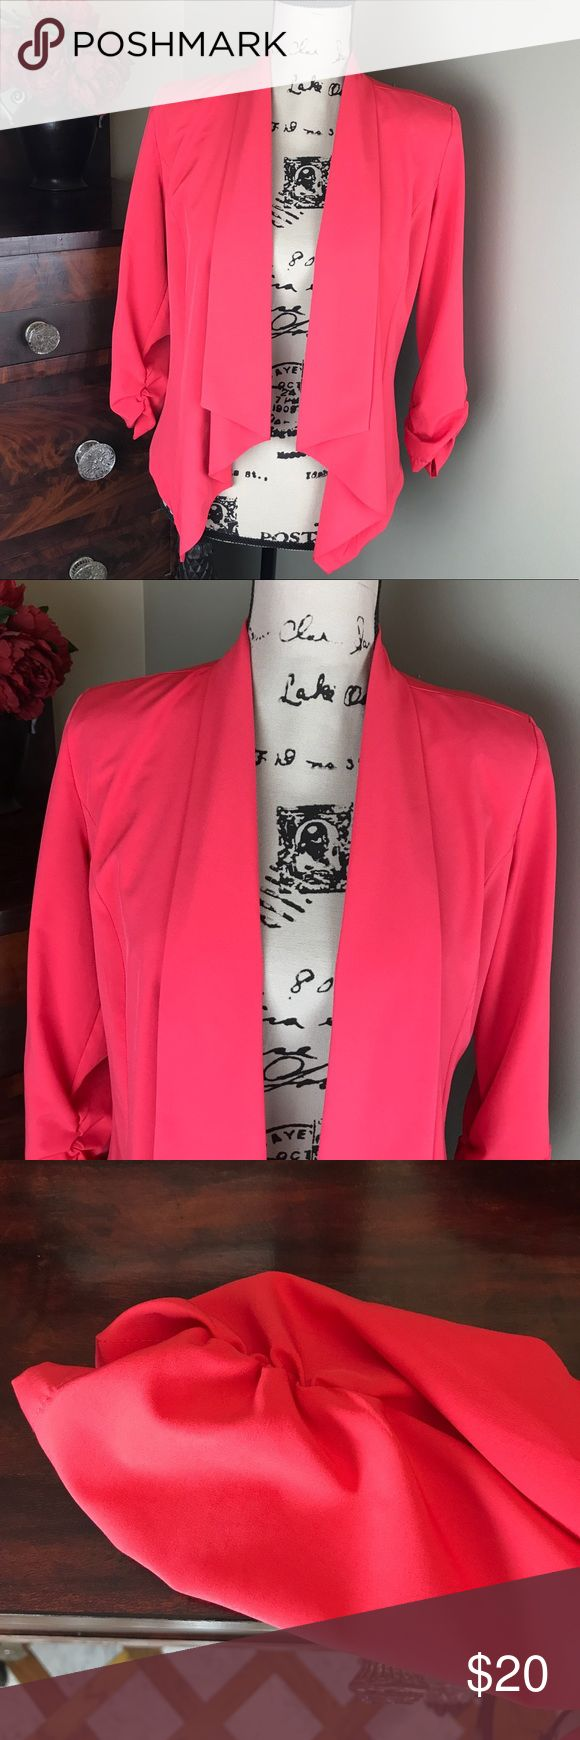 Bobeau Coral Jacket S Excellent condition. 3/4 sleeves. Ruched sleeves. Fabric drapes in the front. Waterfall hemline. Bobeau Jackets & Coats